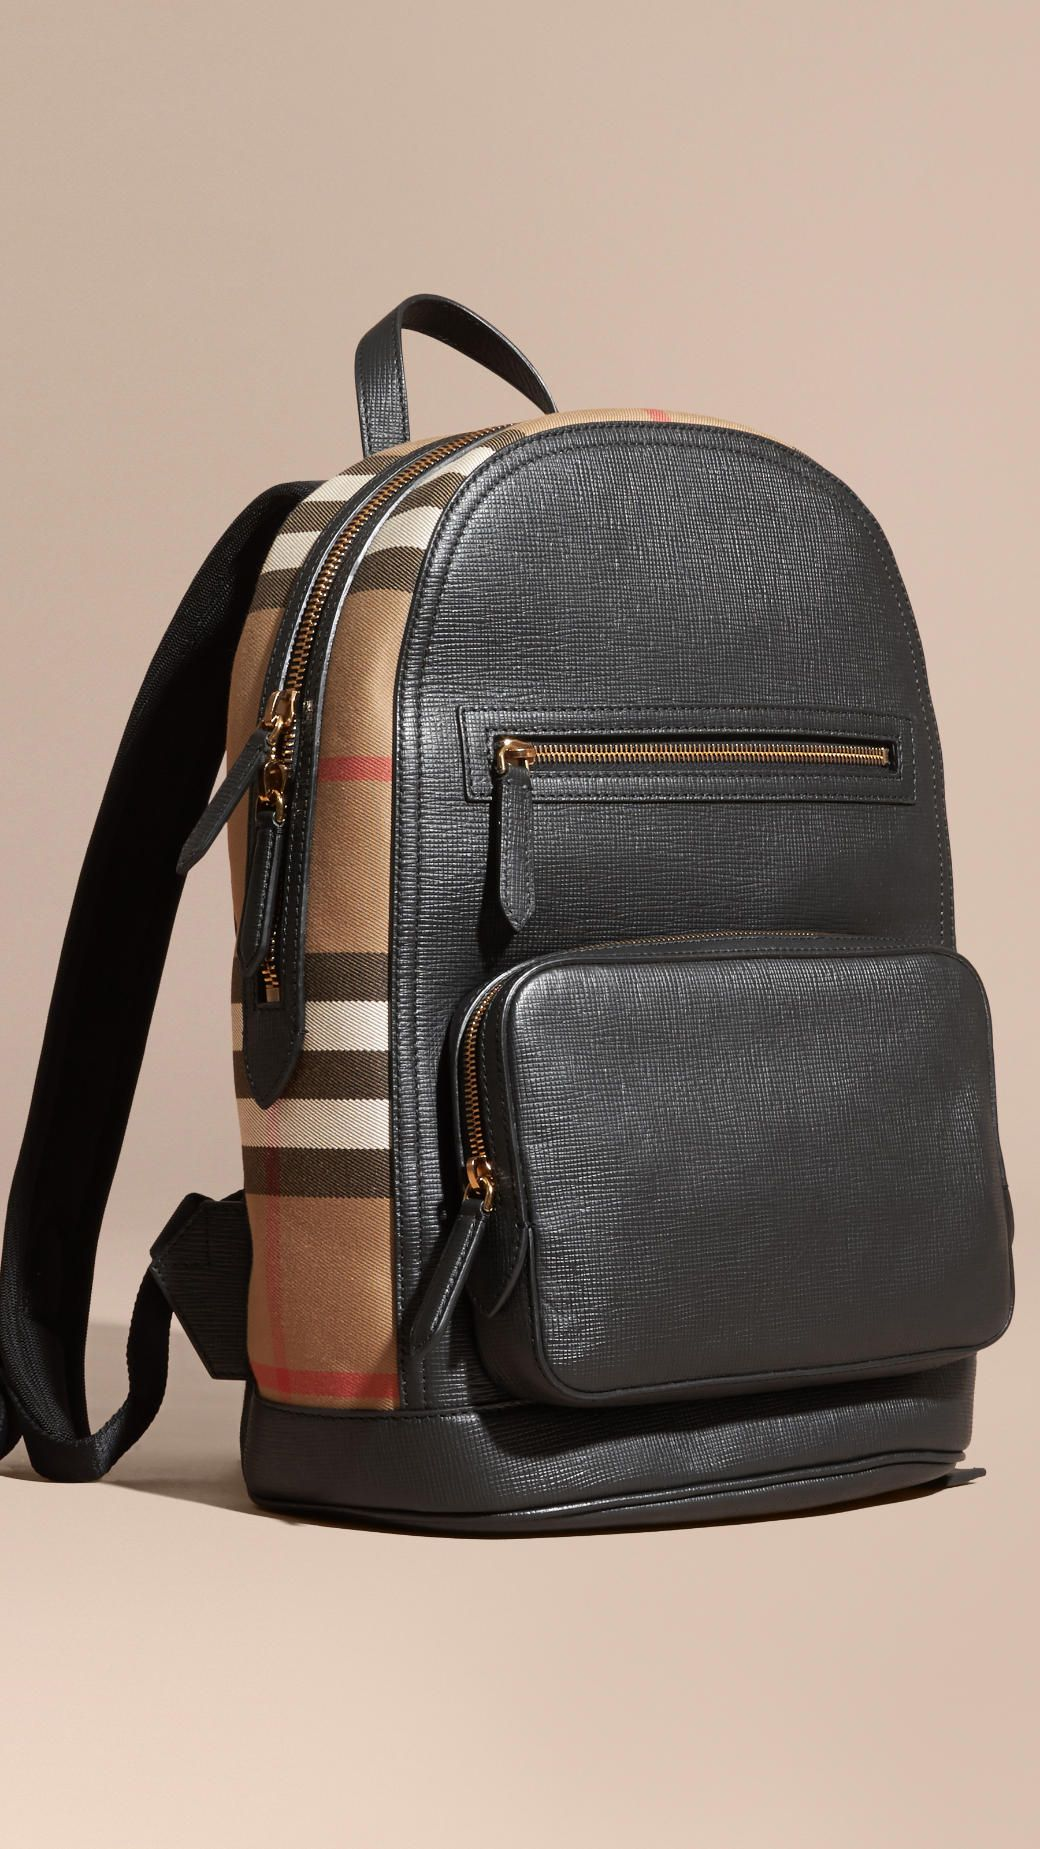 A Backpack Shaped In Textured Leather And English Woven House Check Burberry